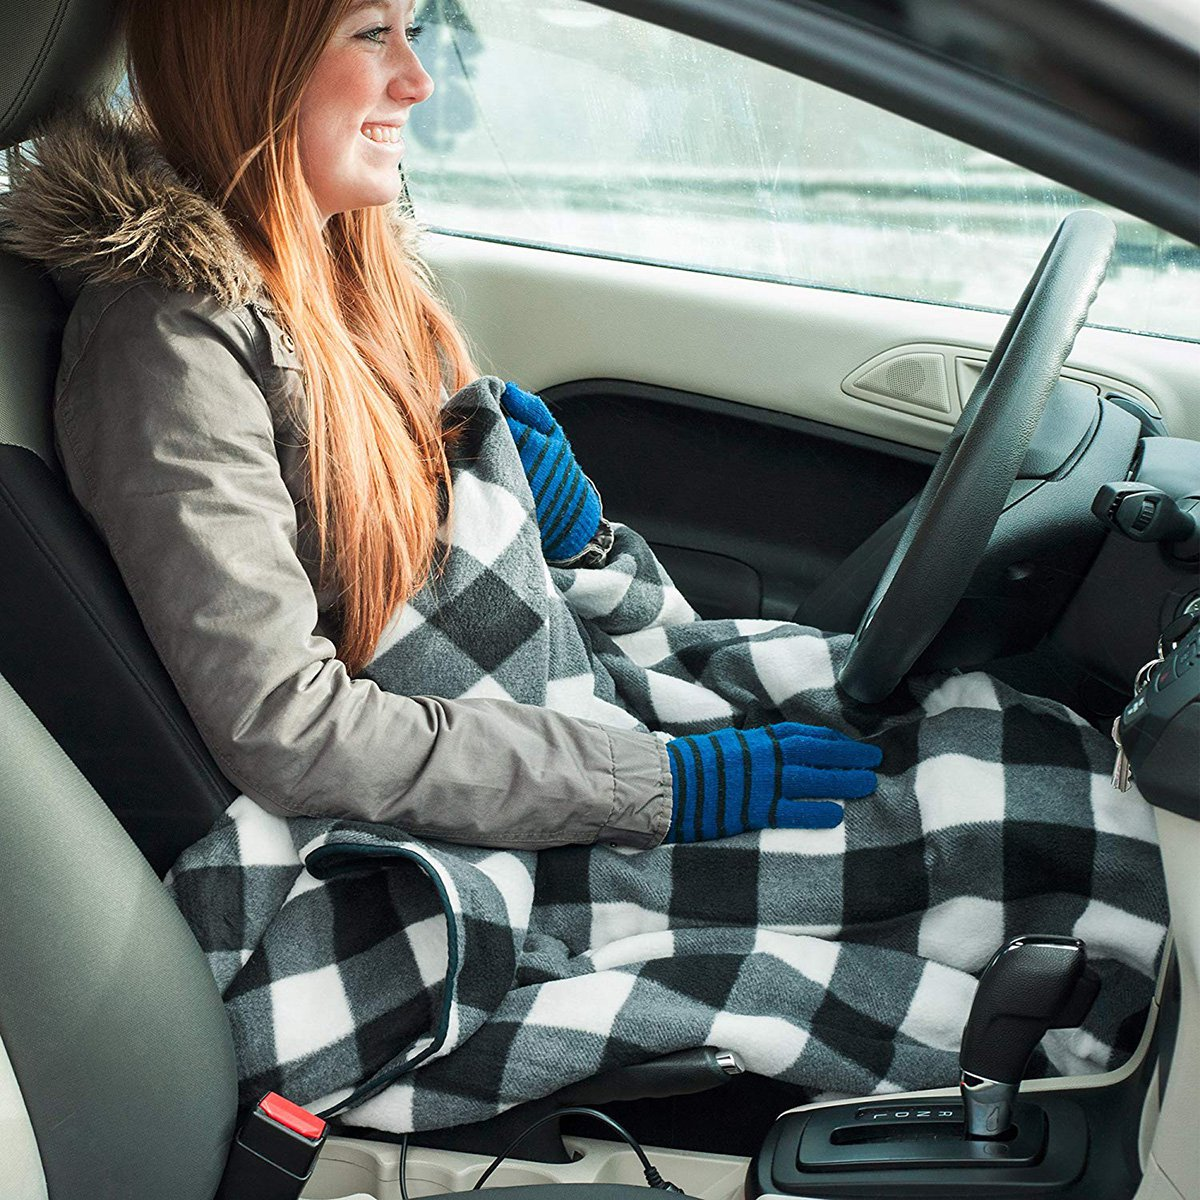 You Can Now Get An Electric Blanket That Connects To Your Car Amazon